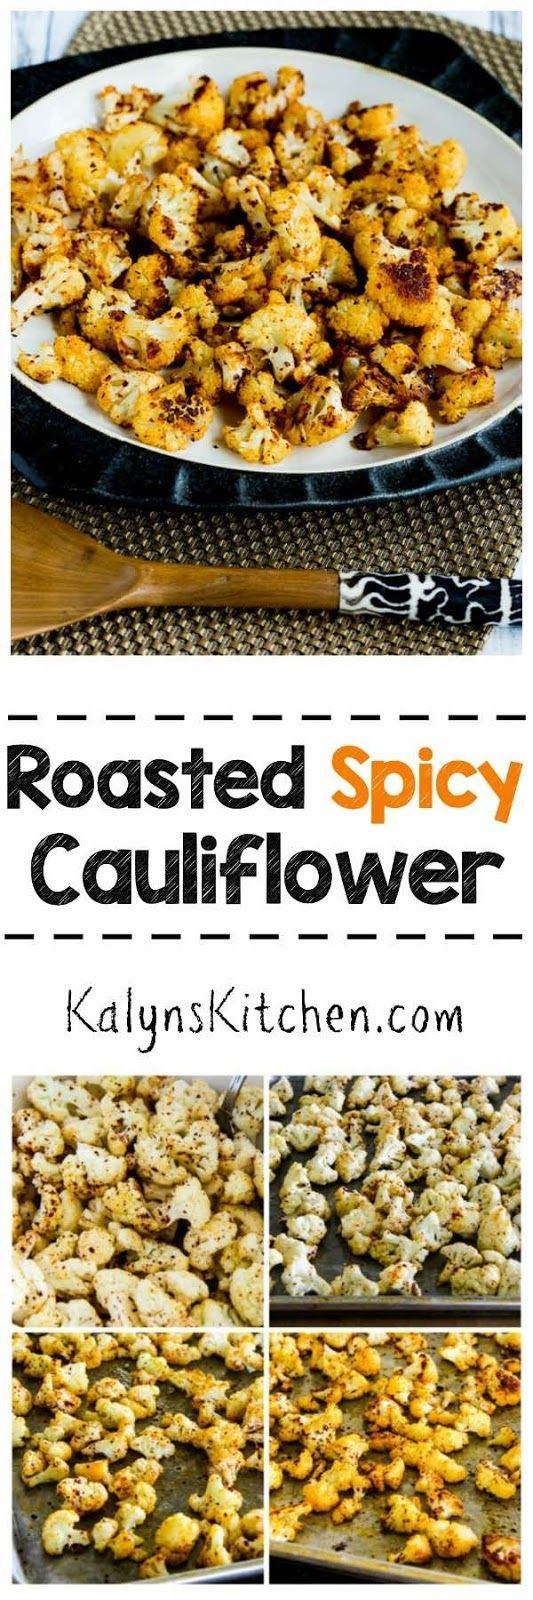 This tasty recipe for Roasted Spicy Cauliflower is popular all year long on my blog, maybe because it's low-carb, gluten-free, dairy-free, vegan, Paleo, Whole 30, and South Beach Diet friendly. PIN NOW to save if you don't want to make it until the weather cools down a bit! [found on KalynsKitchen.com]